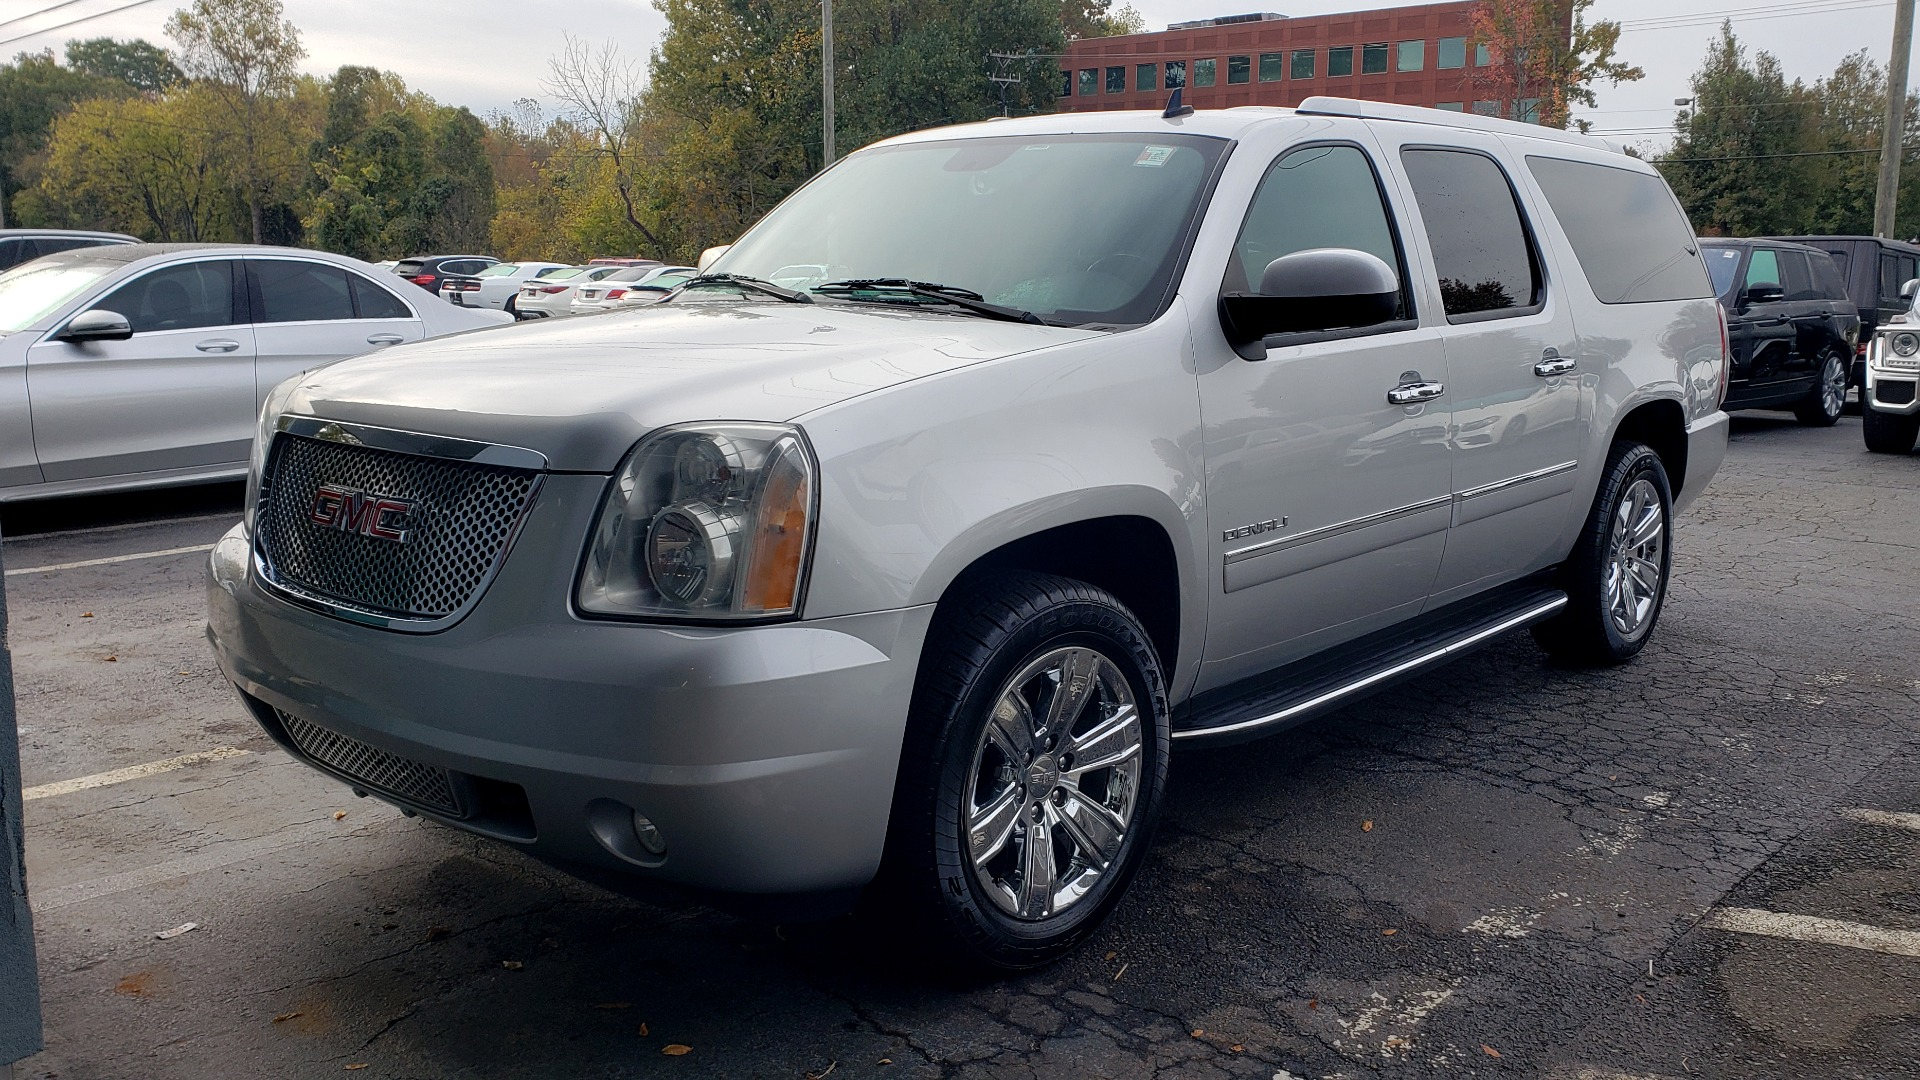 Used 2014 GMC YUKON XL DENALI / 5.3L V8 / AWD / NAV / BOSE / SUNROOF / 3-ROW / REARVIEW for sale $24,995 at Formula Imports in Charlotte NC 28227 1